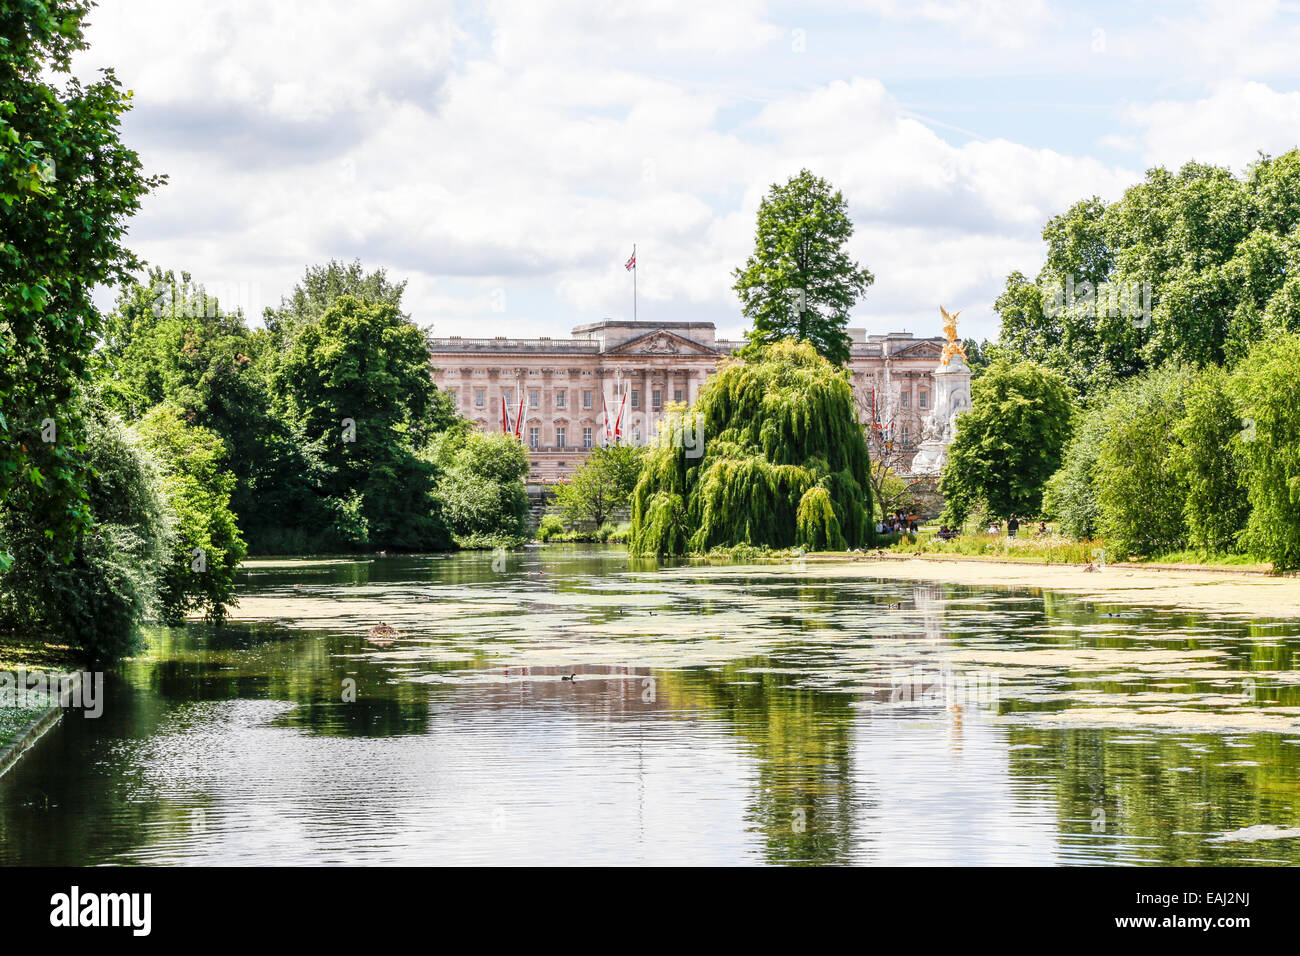 St James's Park London, with Buckingham Palace in the background Stock Photo